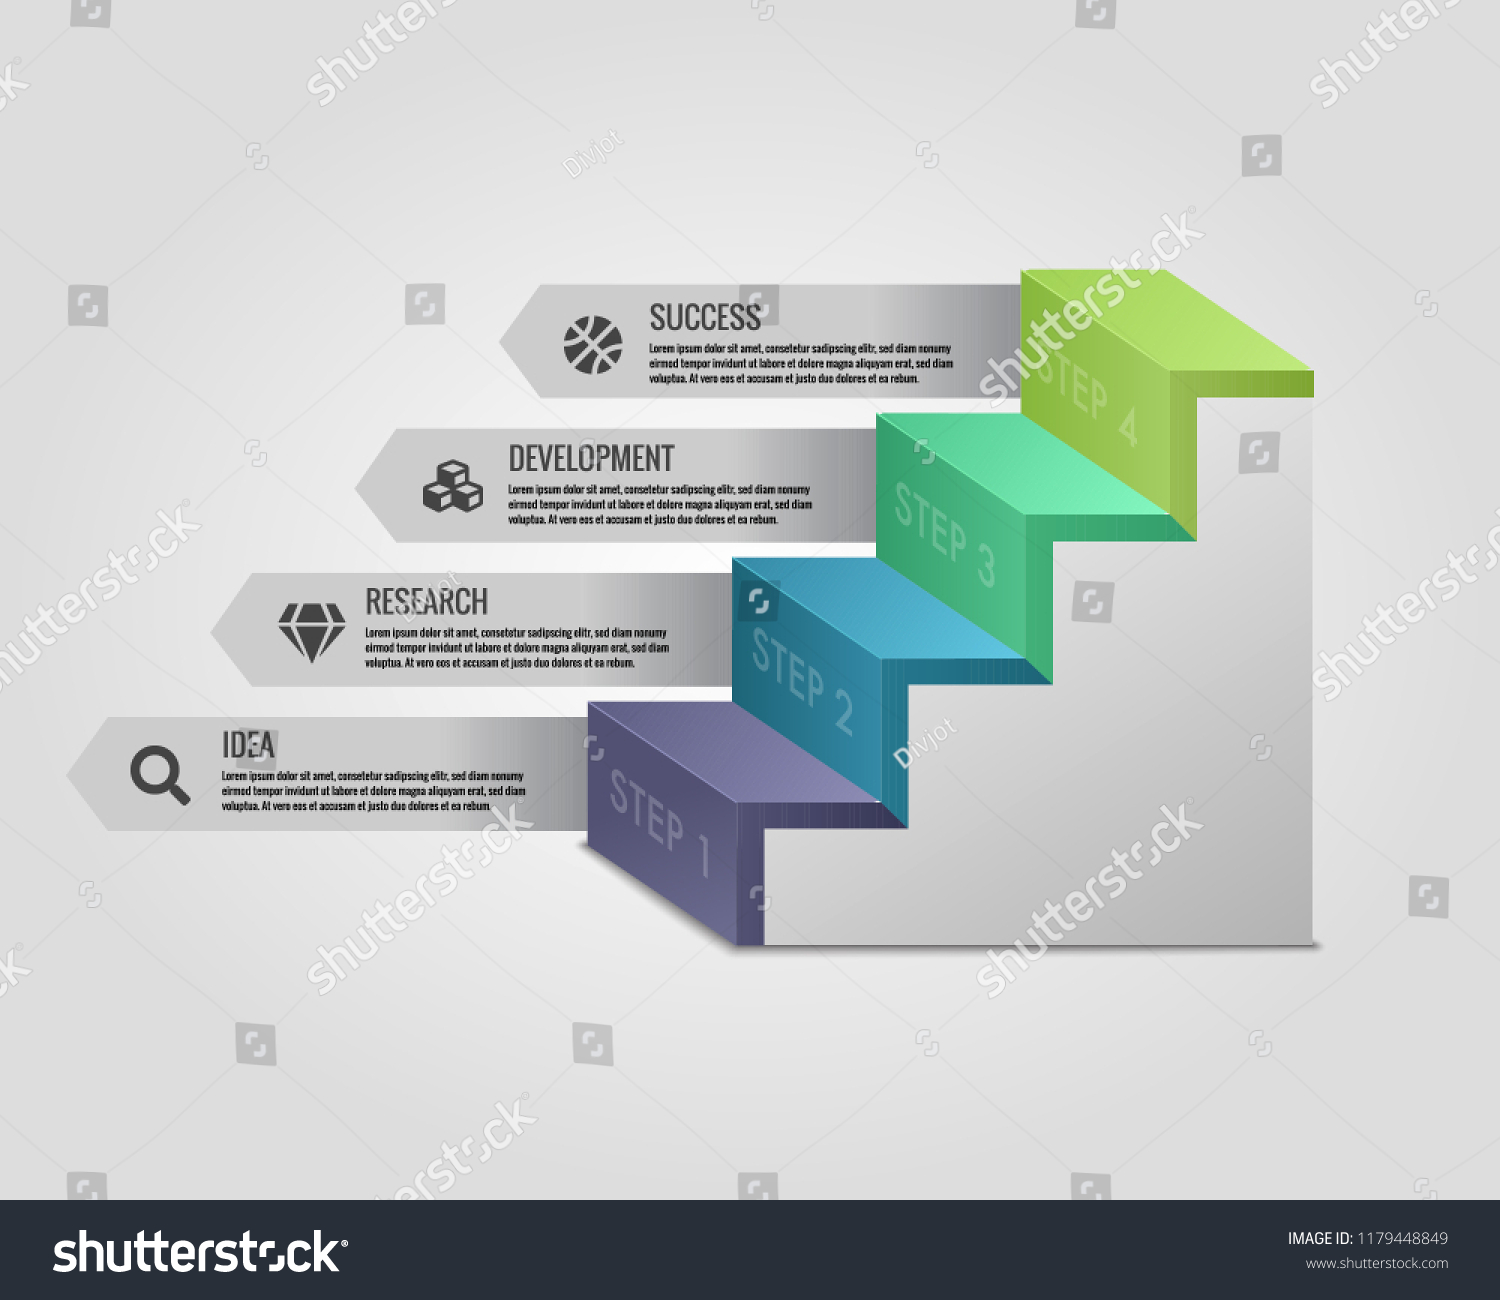 Stairs Infographic Element Illustration. Perfect for Illustrations,  Infographics, Powerpoint Presentations and other Graphics